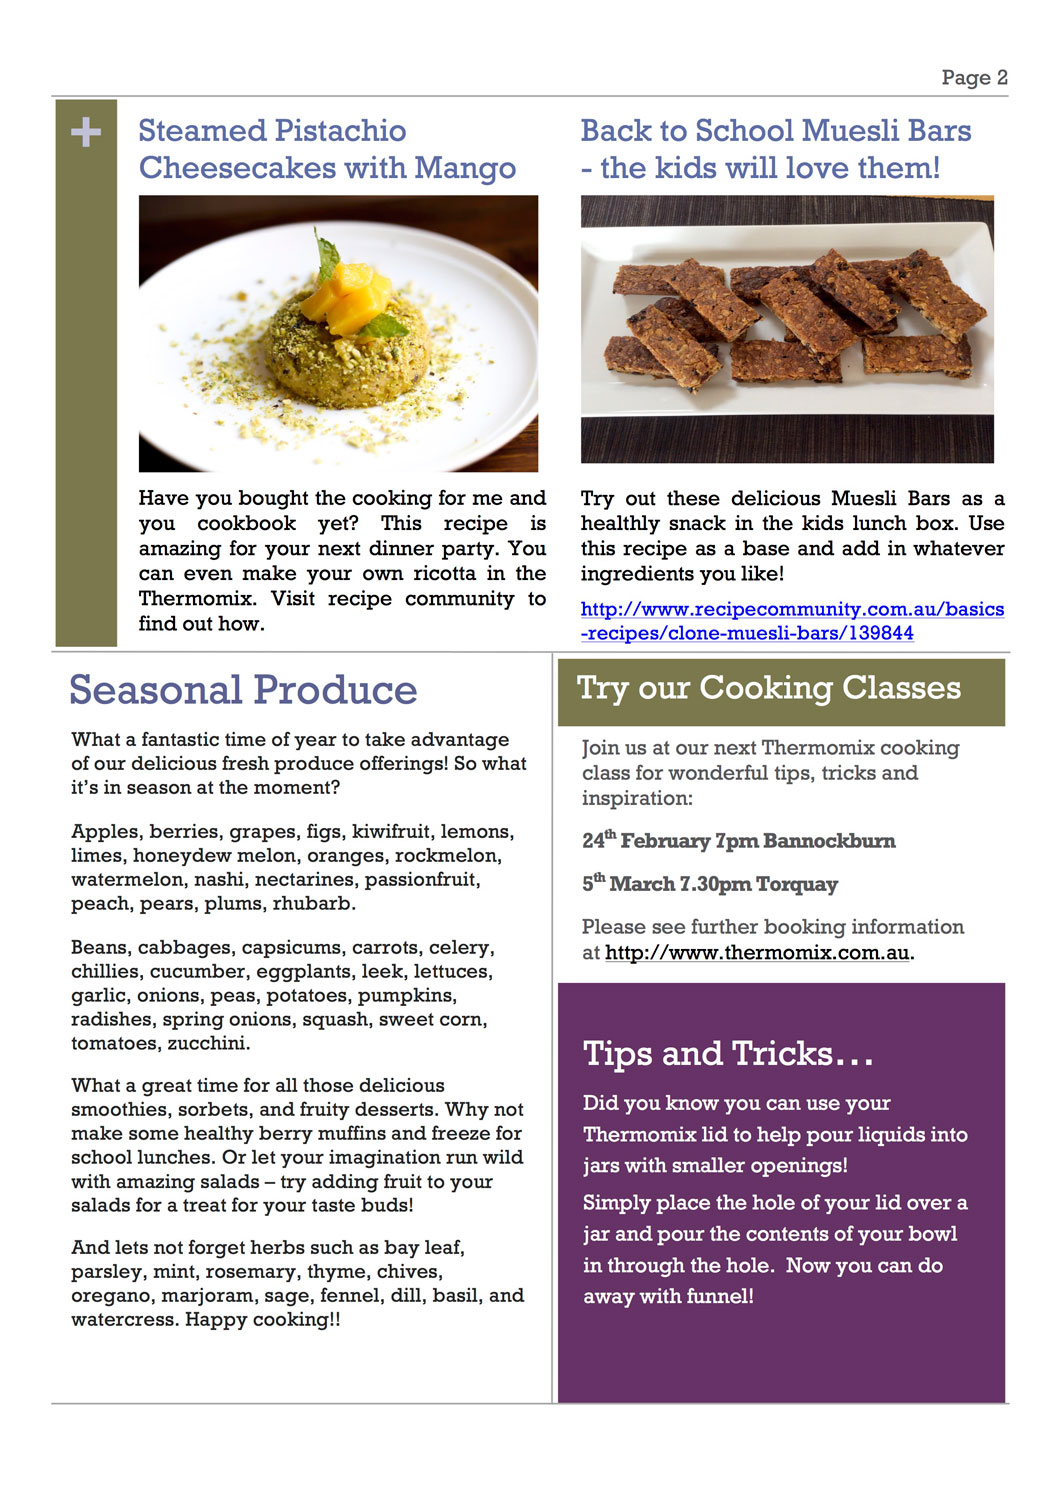 Thermomix Monthly Newsletter 2